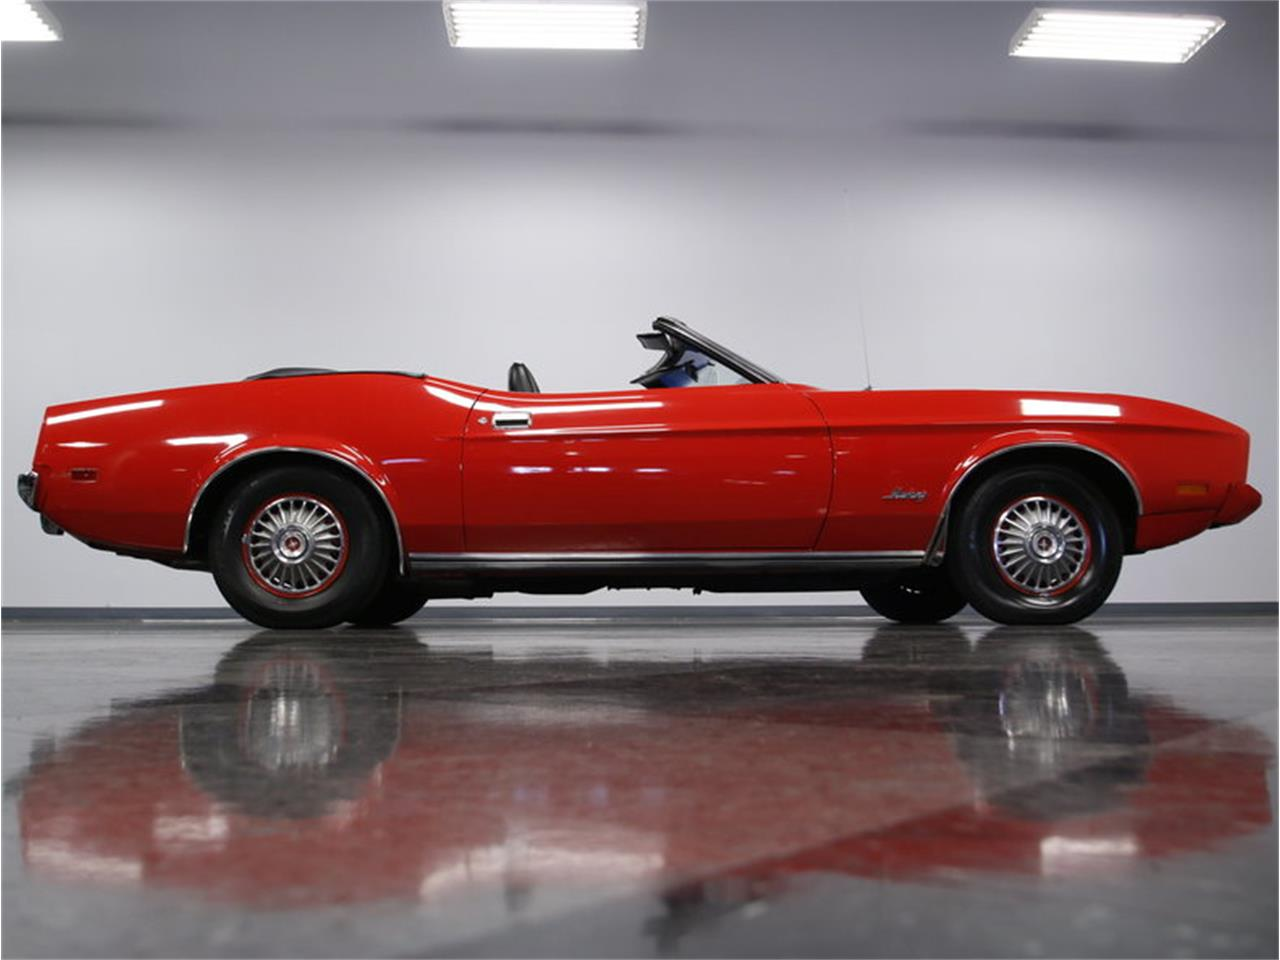 Large Picture of Classic '73 Mustang 351 Cobra Jet - $24,995.00 Offered by Streetside Classics - Charlotte - KISW